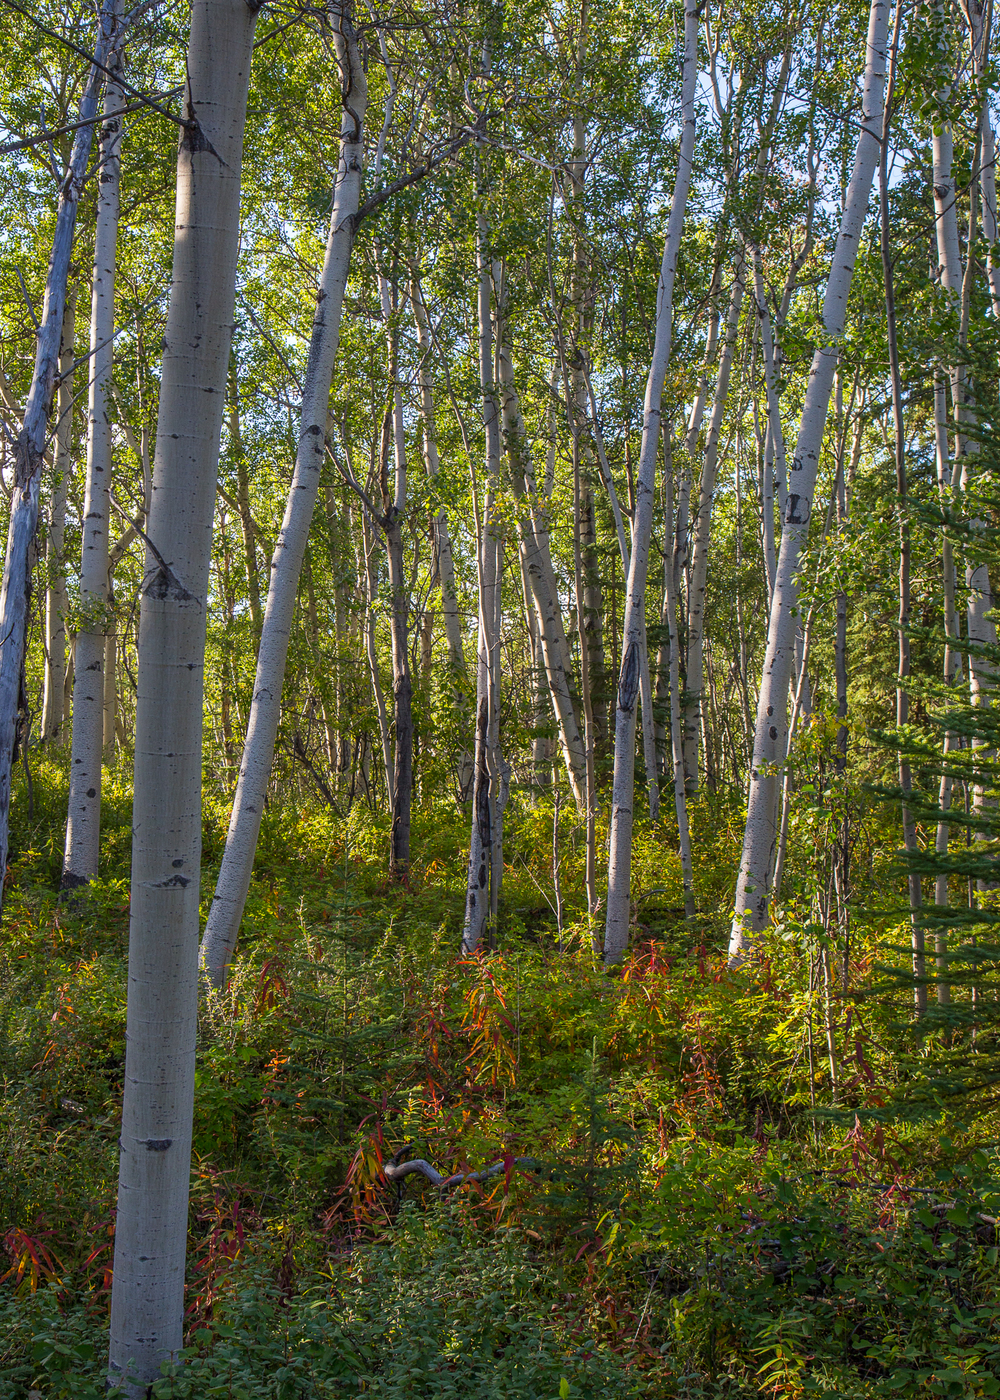 Aspen (I think) forest on the hiking trail.